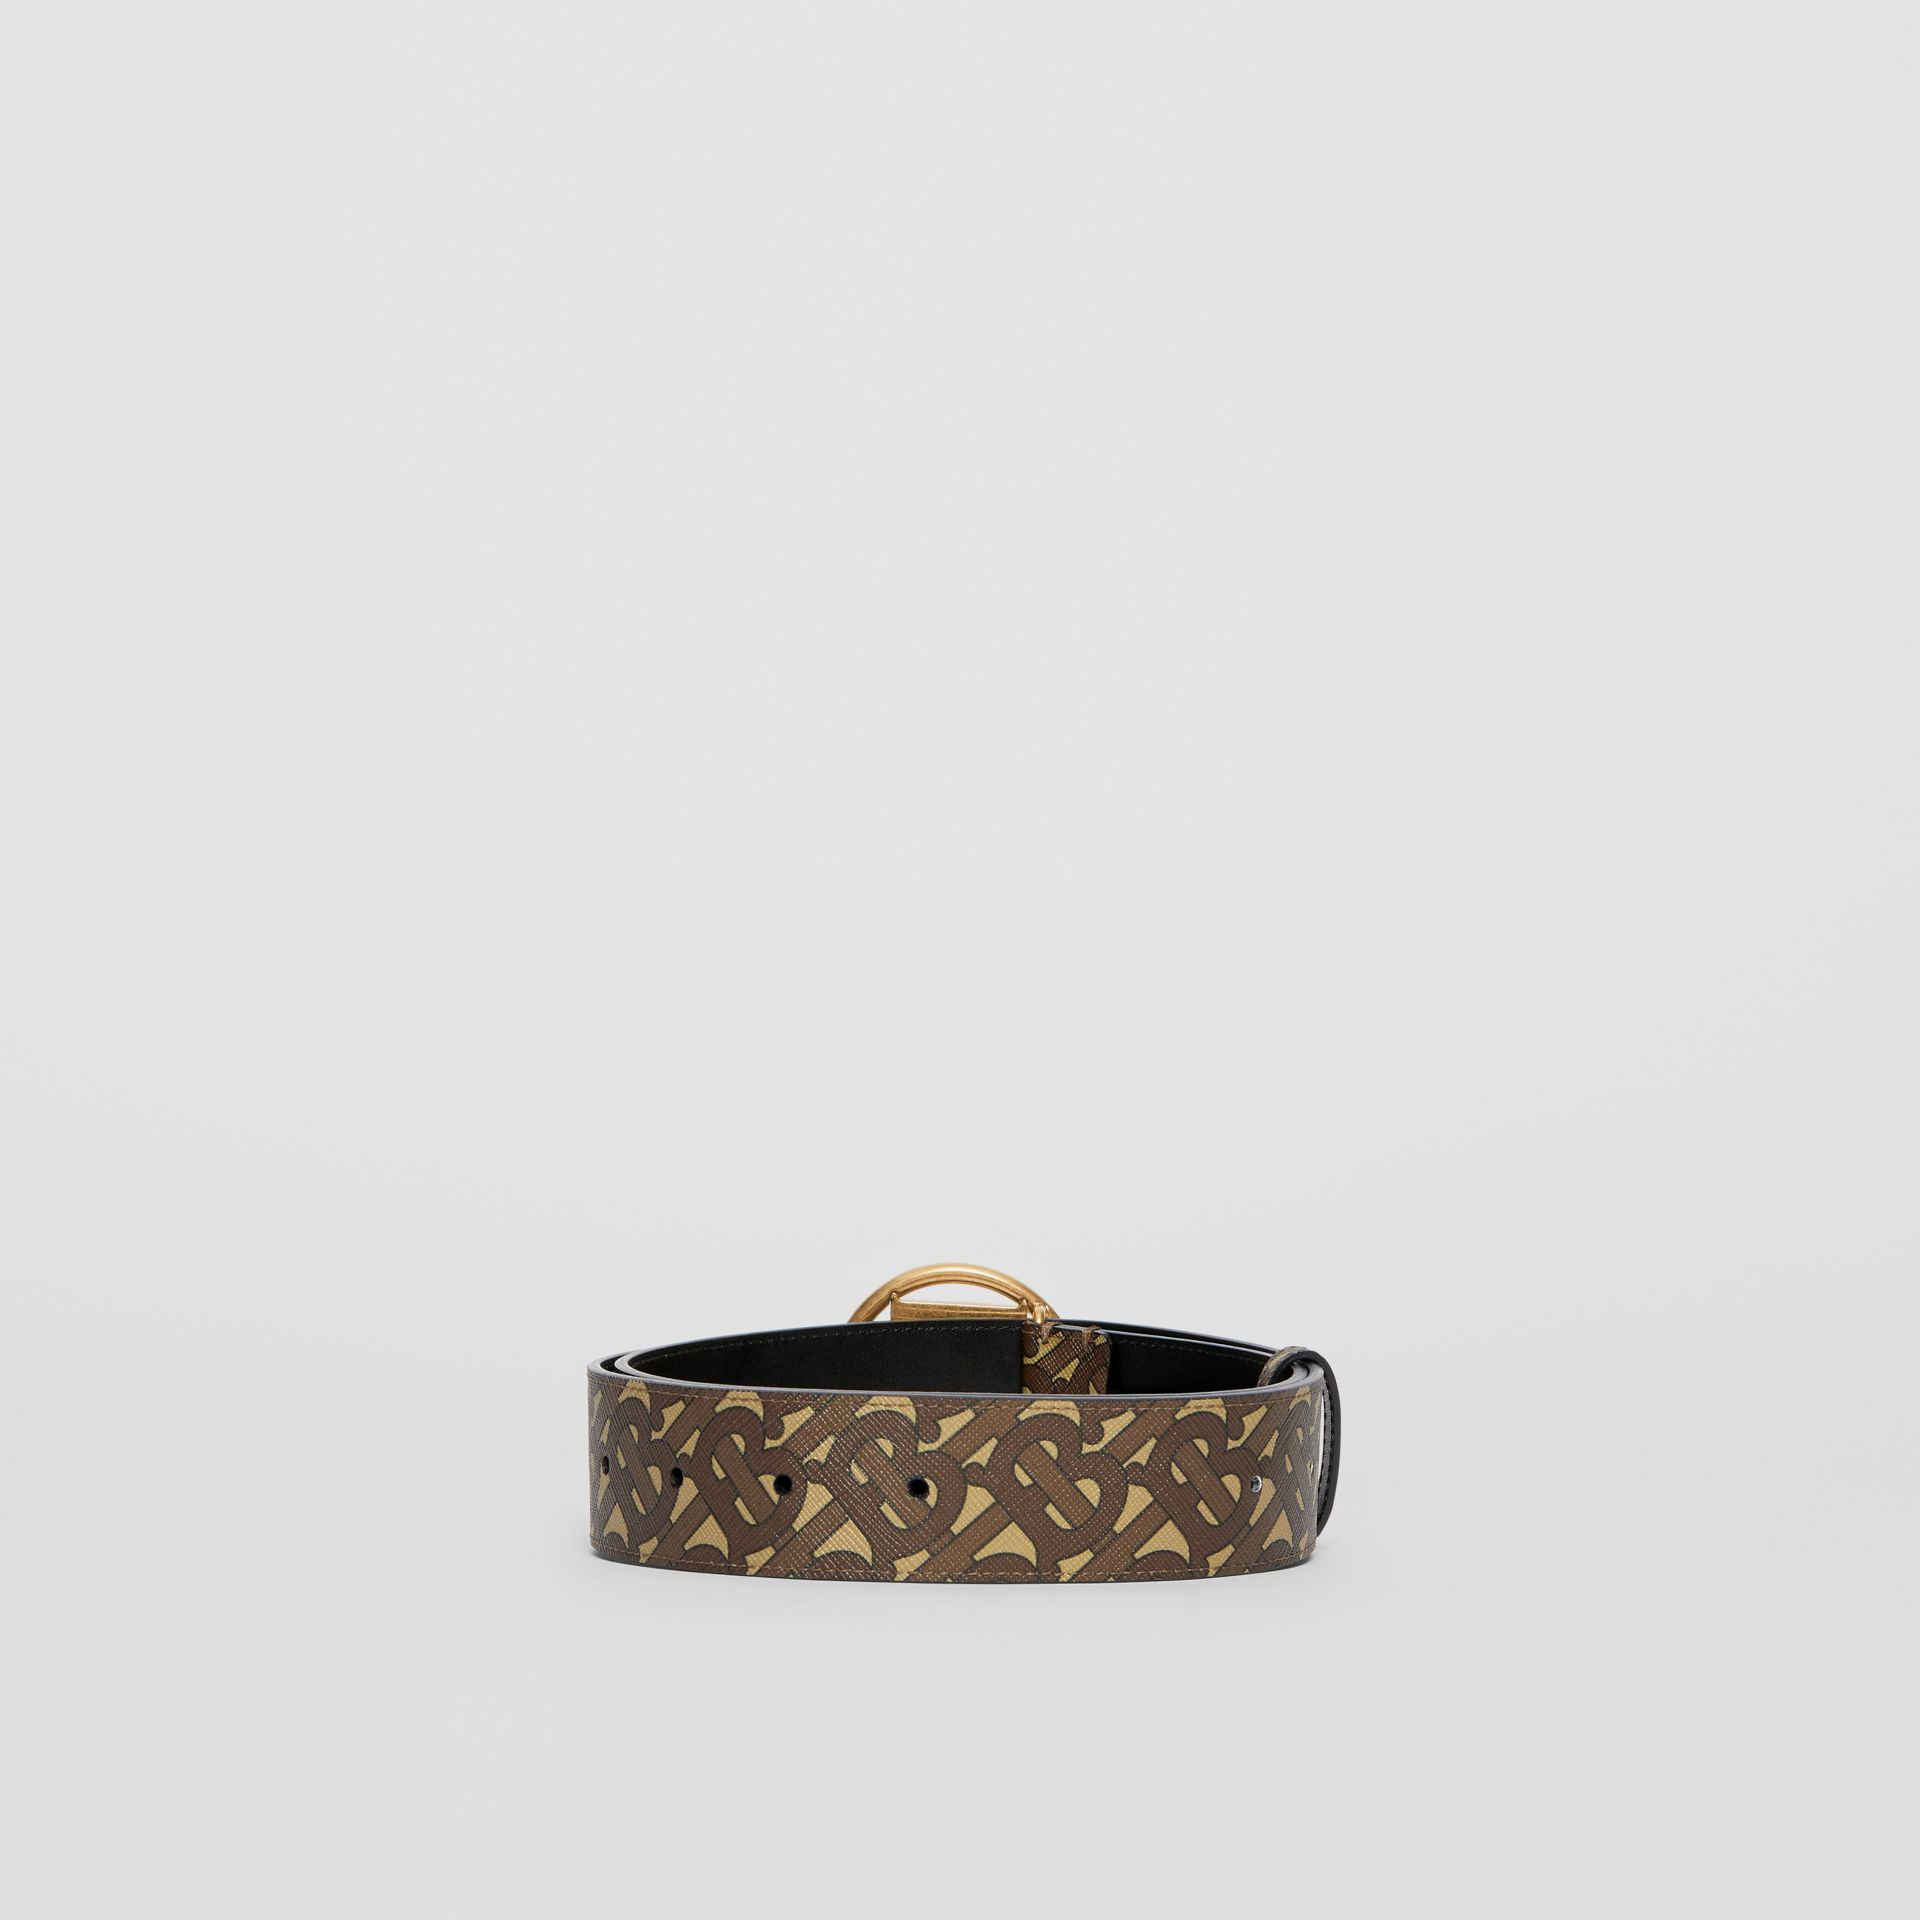 Monogram Motif Monogram Print E-canvas Belt in Bridle Brown - Women | Burberry United Kingdom - gallery image 4